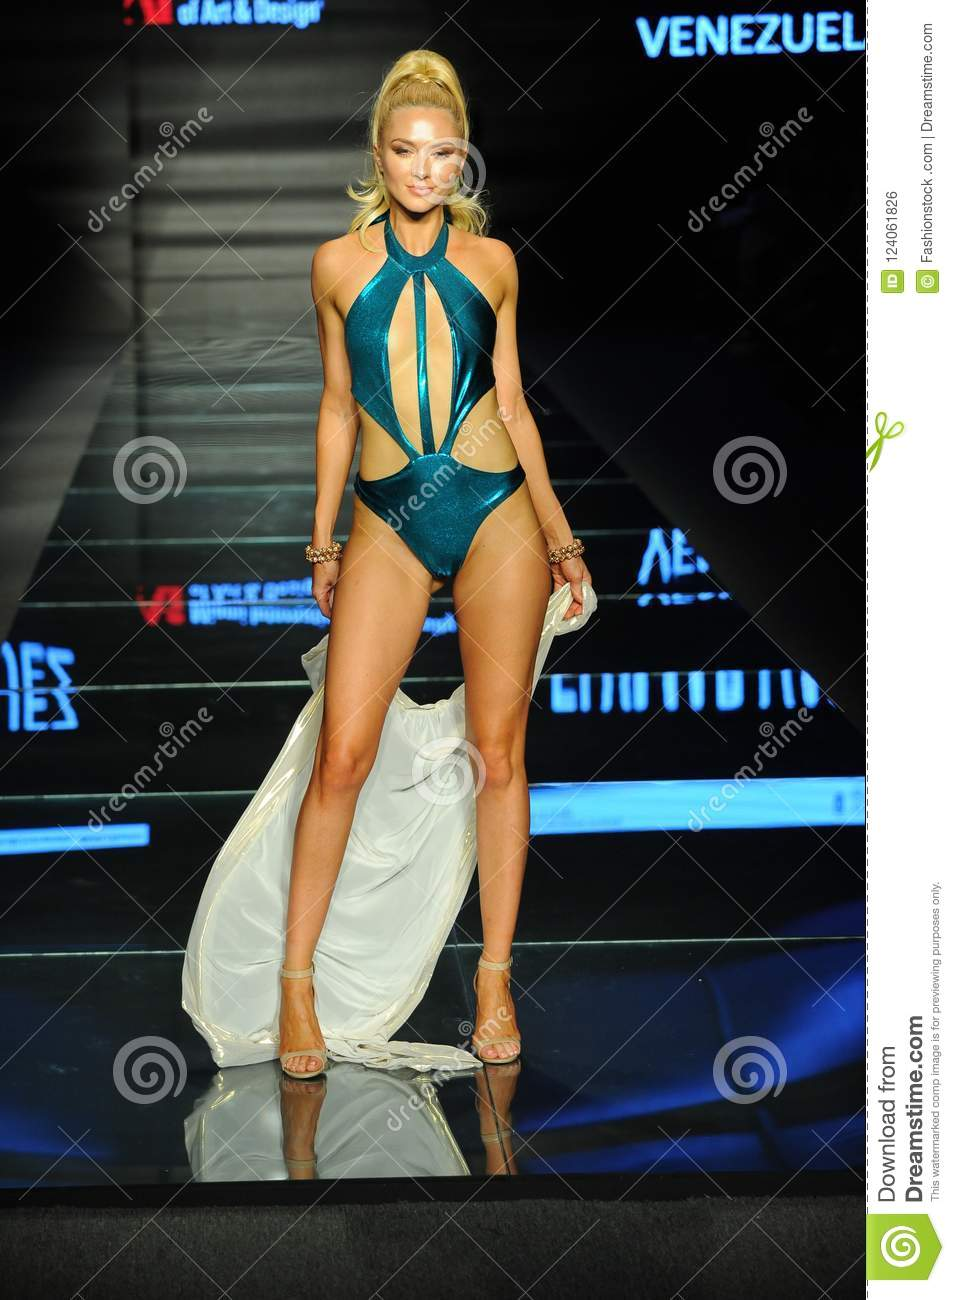 A Model Wears Fashions By Design Students Of Miami International University Of Art And Design Editorial Photo Image Of 2019 Florida 124061826